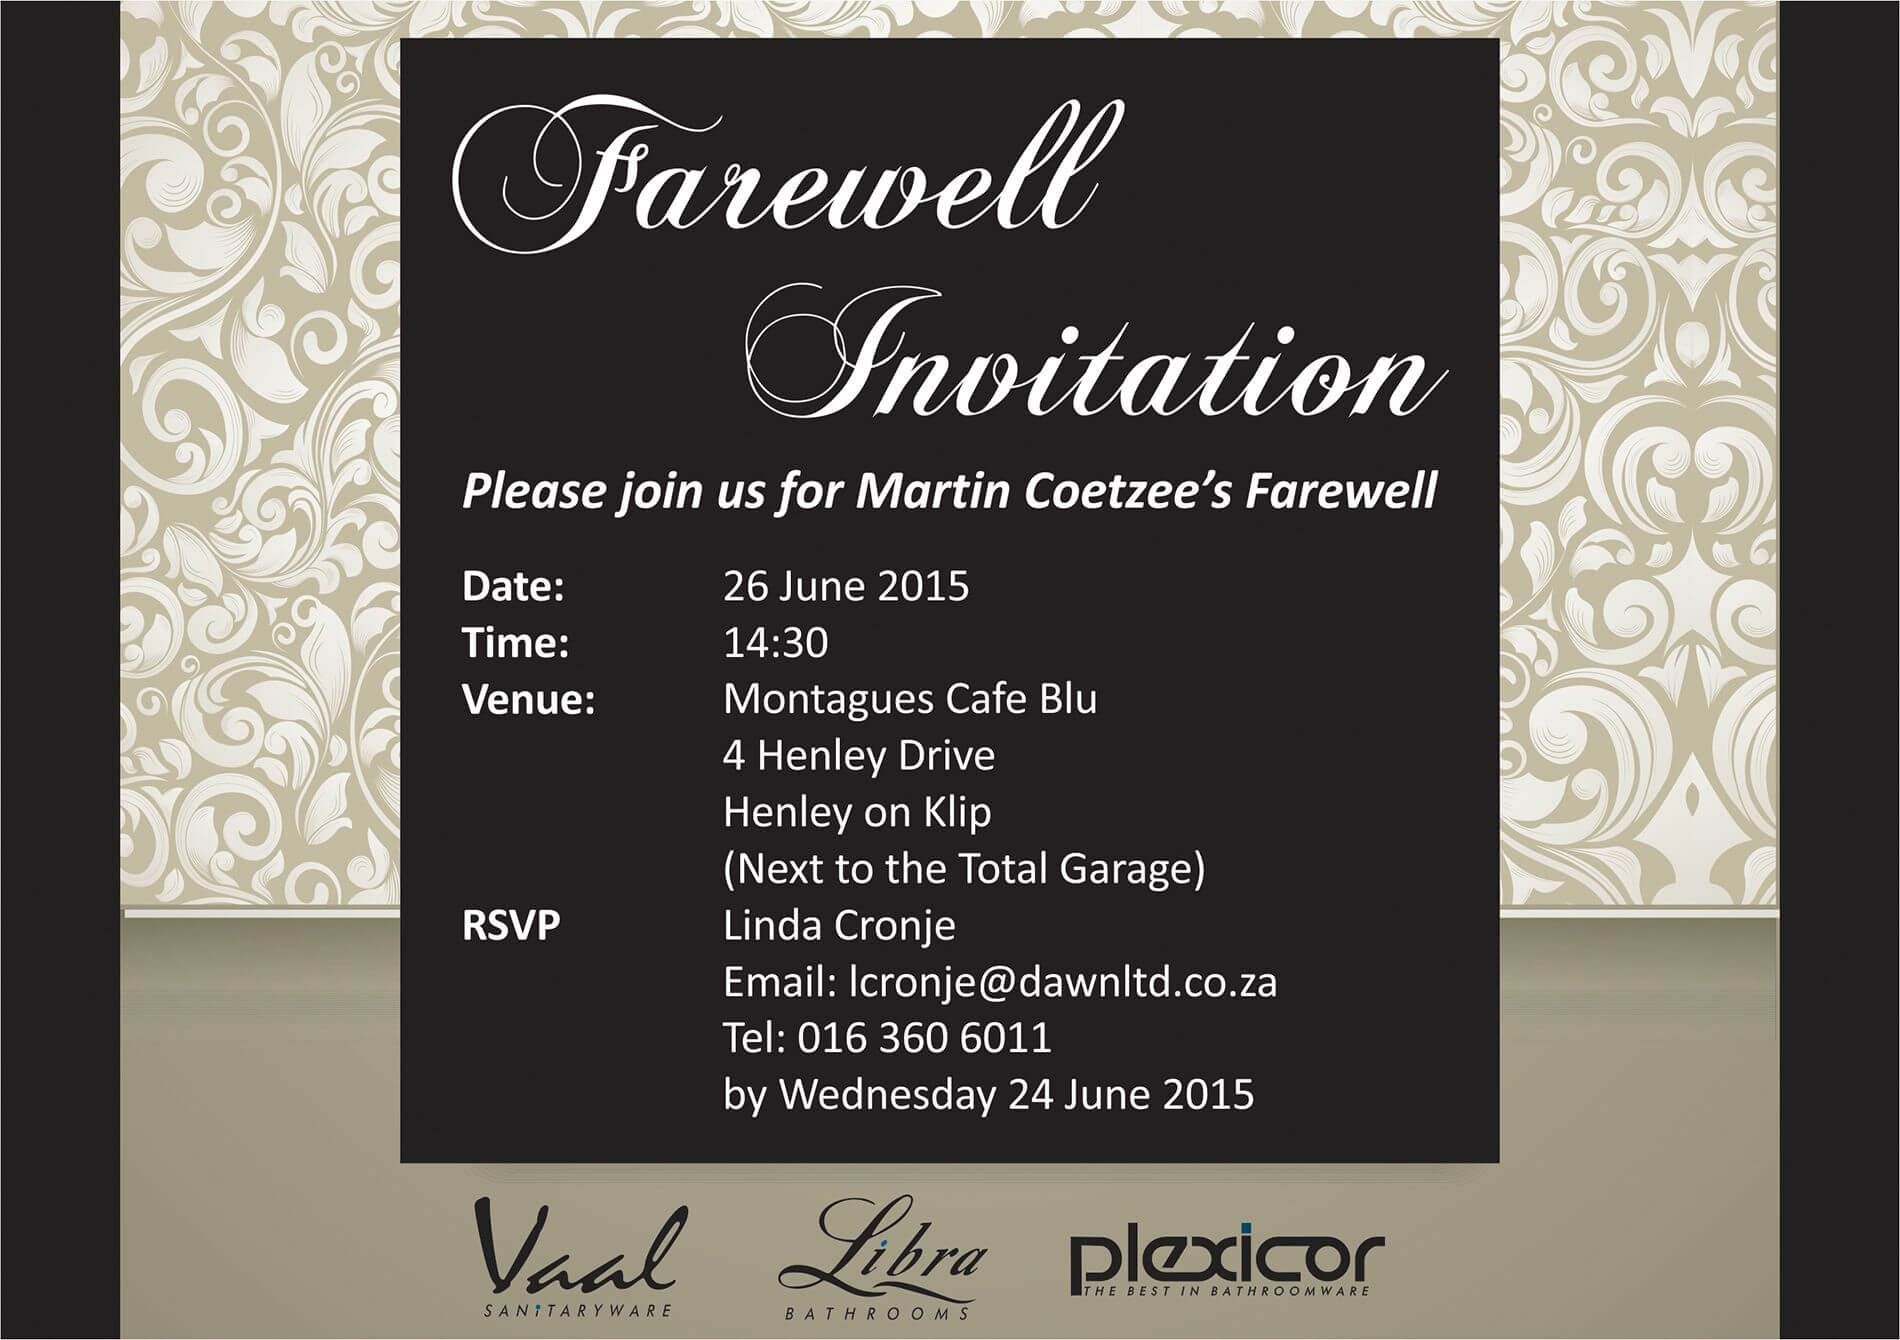 Event Invitation Card Template+Word | Free Invitation Cards For Event Invitation Card Template